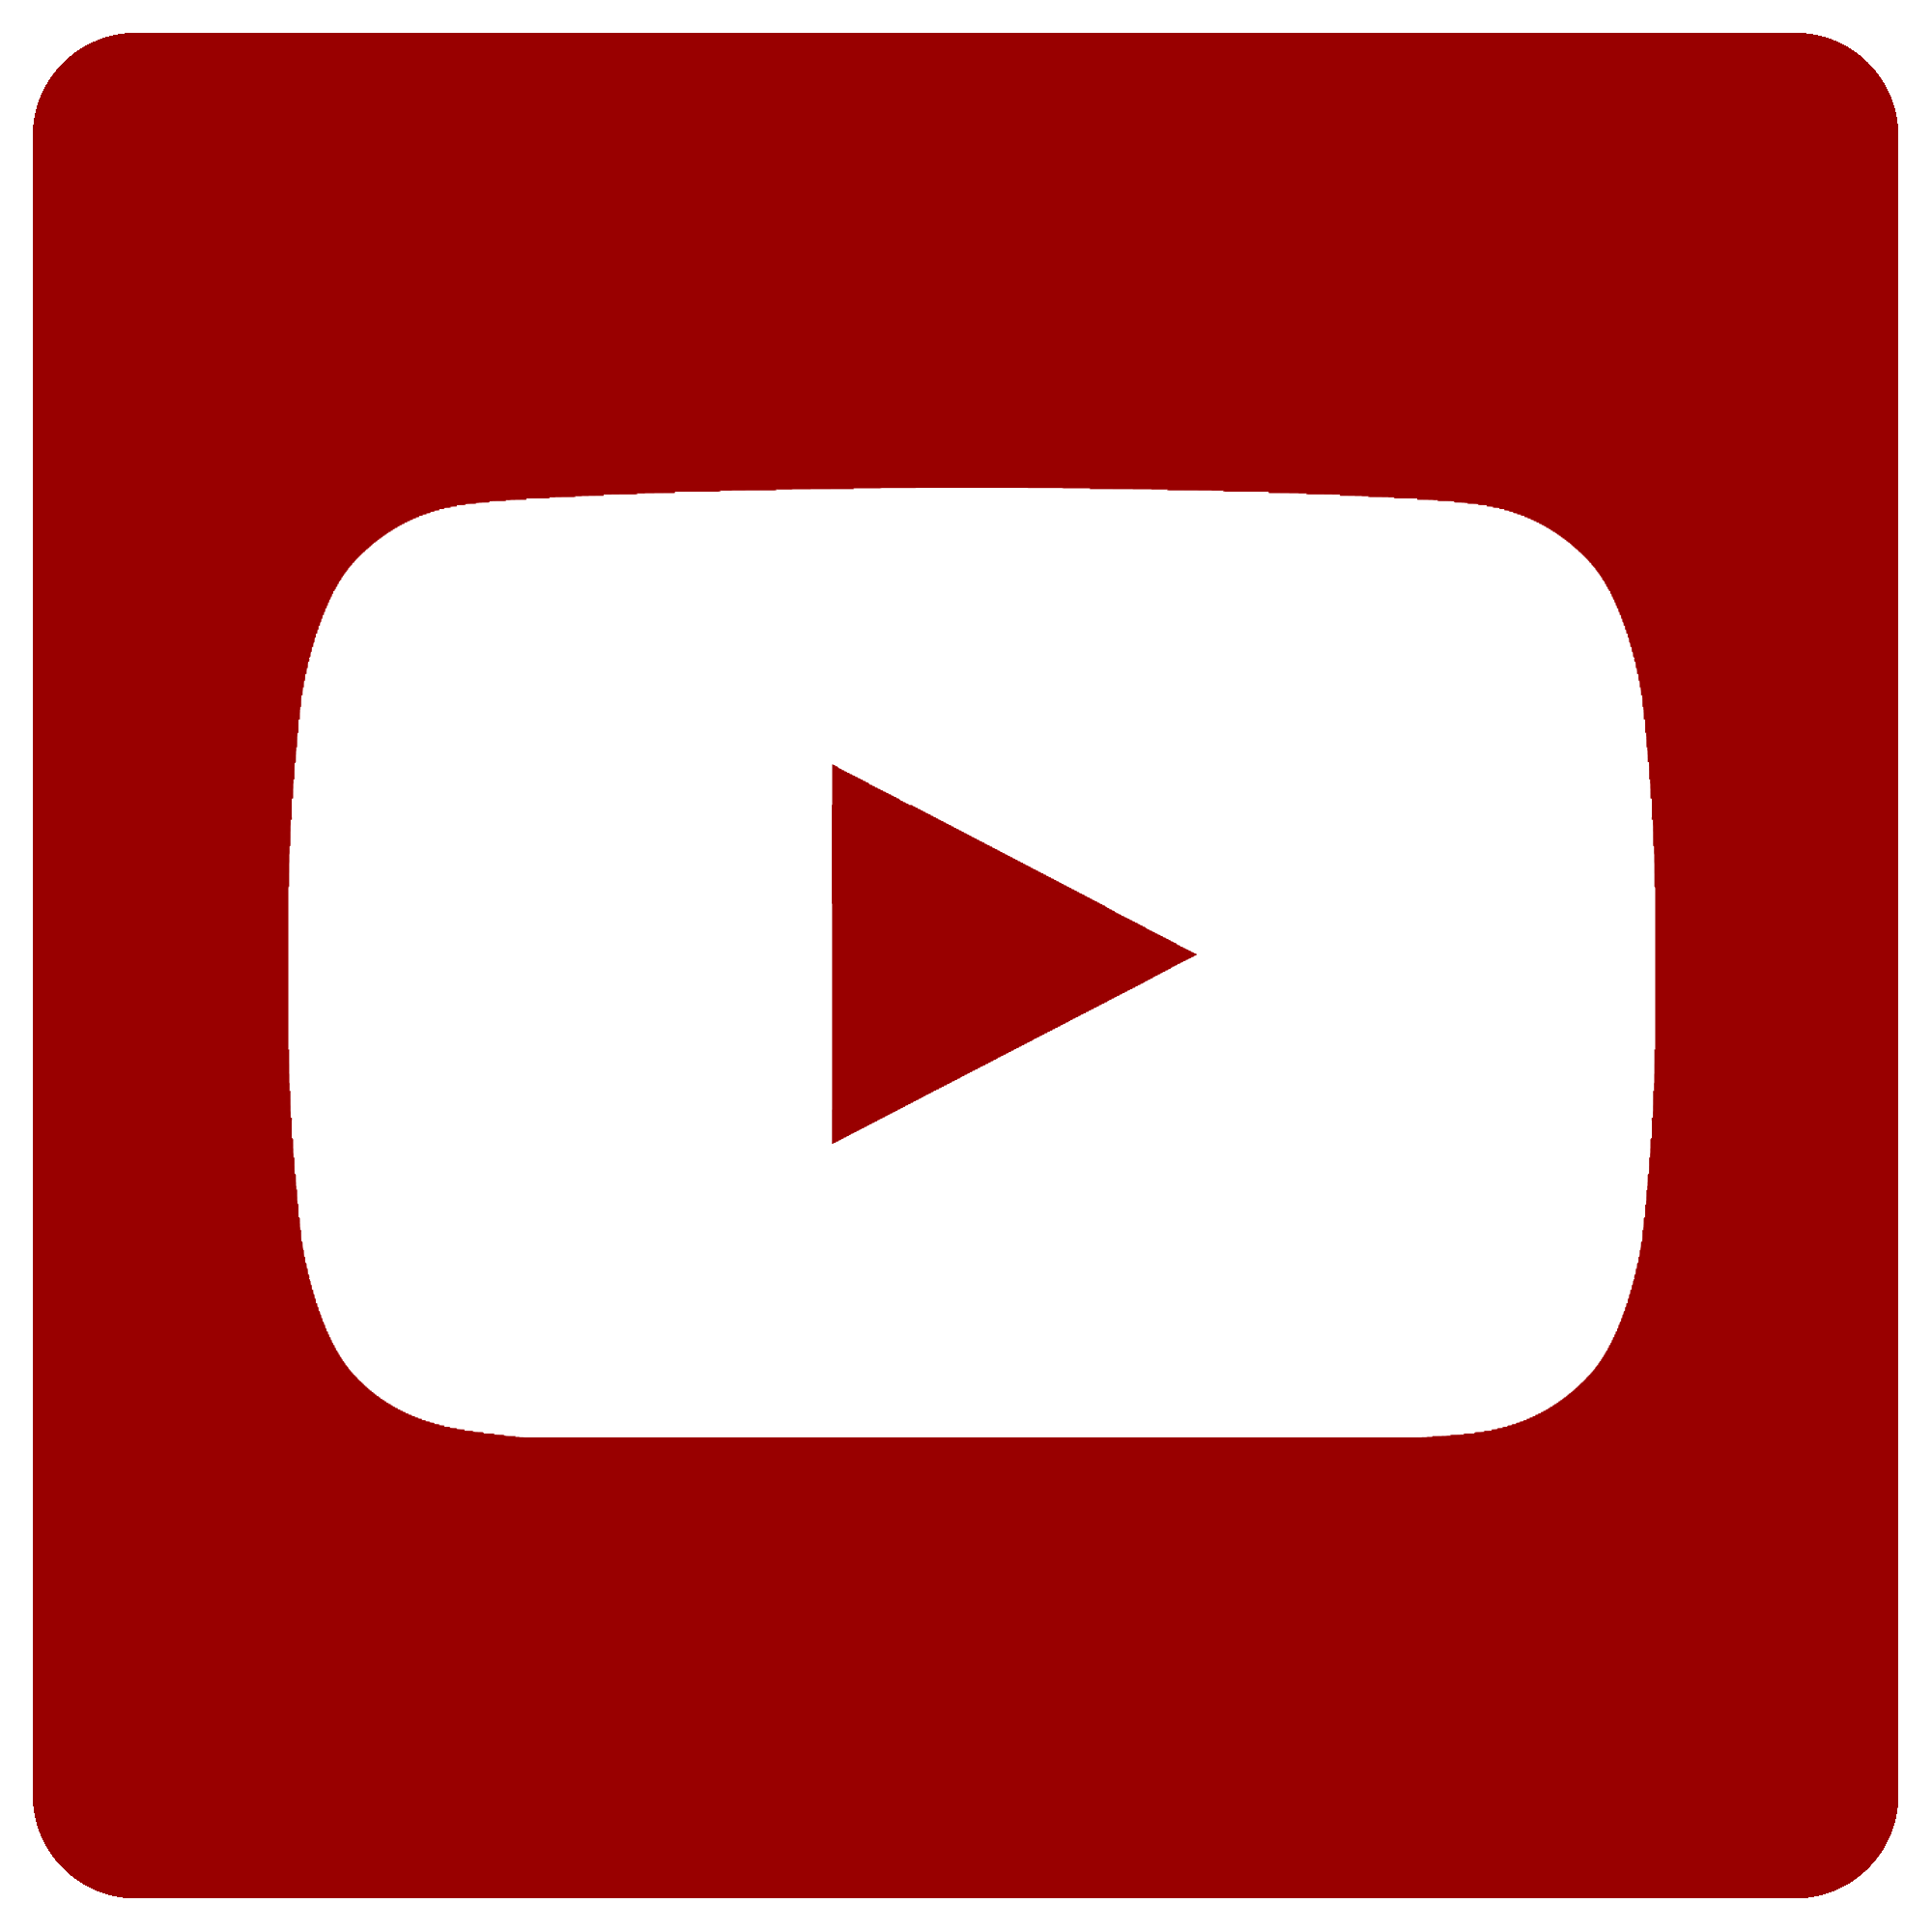 youtube like clipart watermark